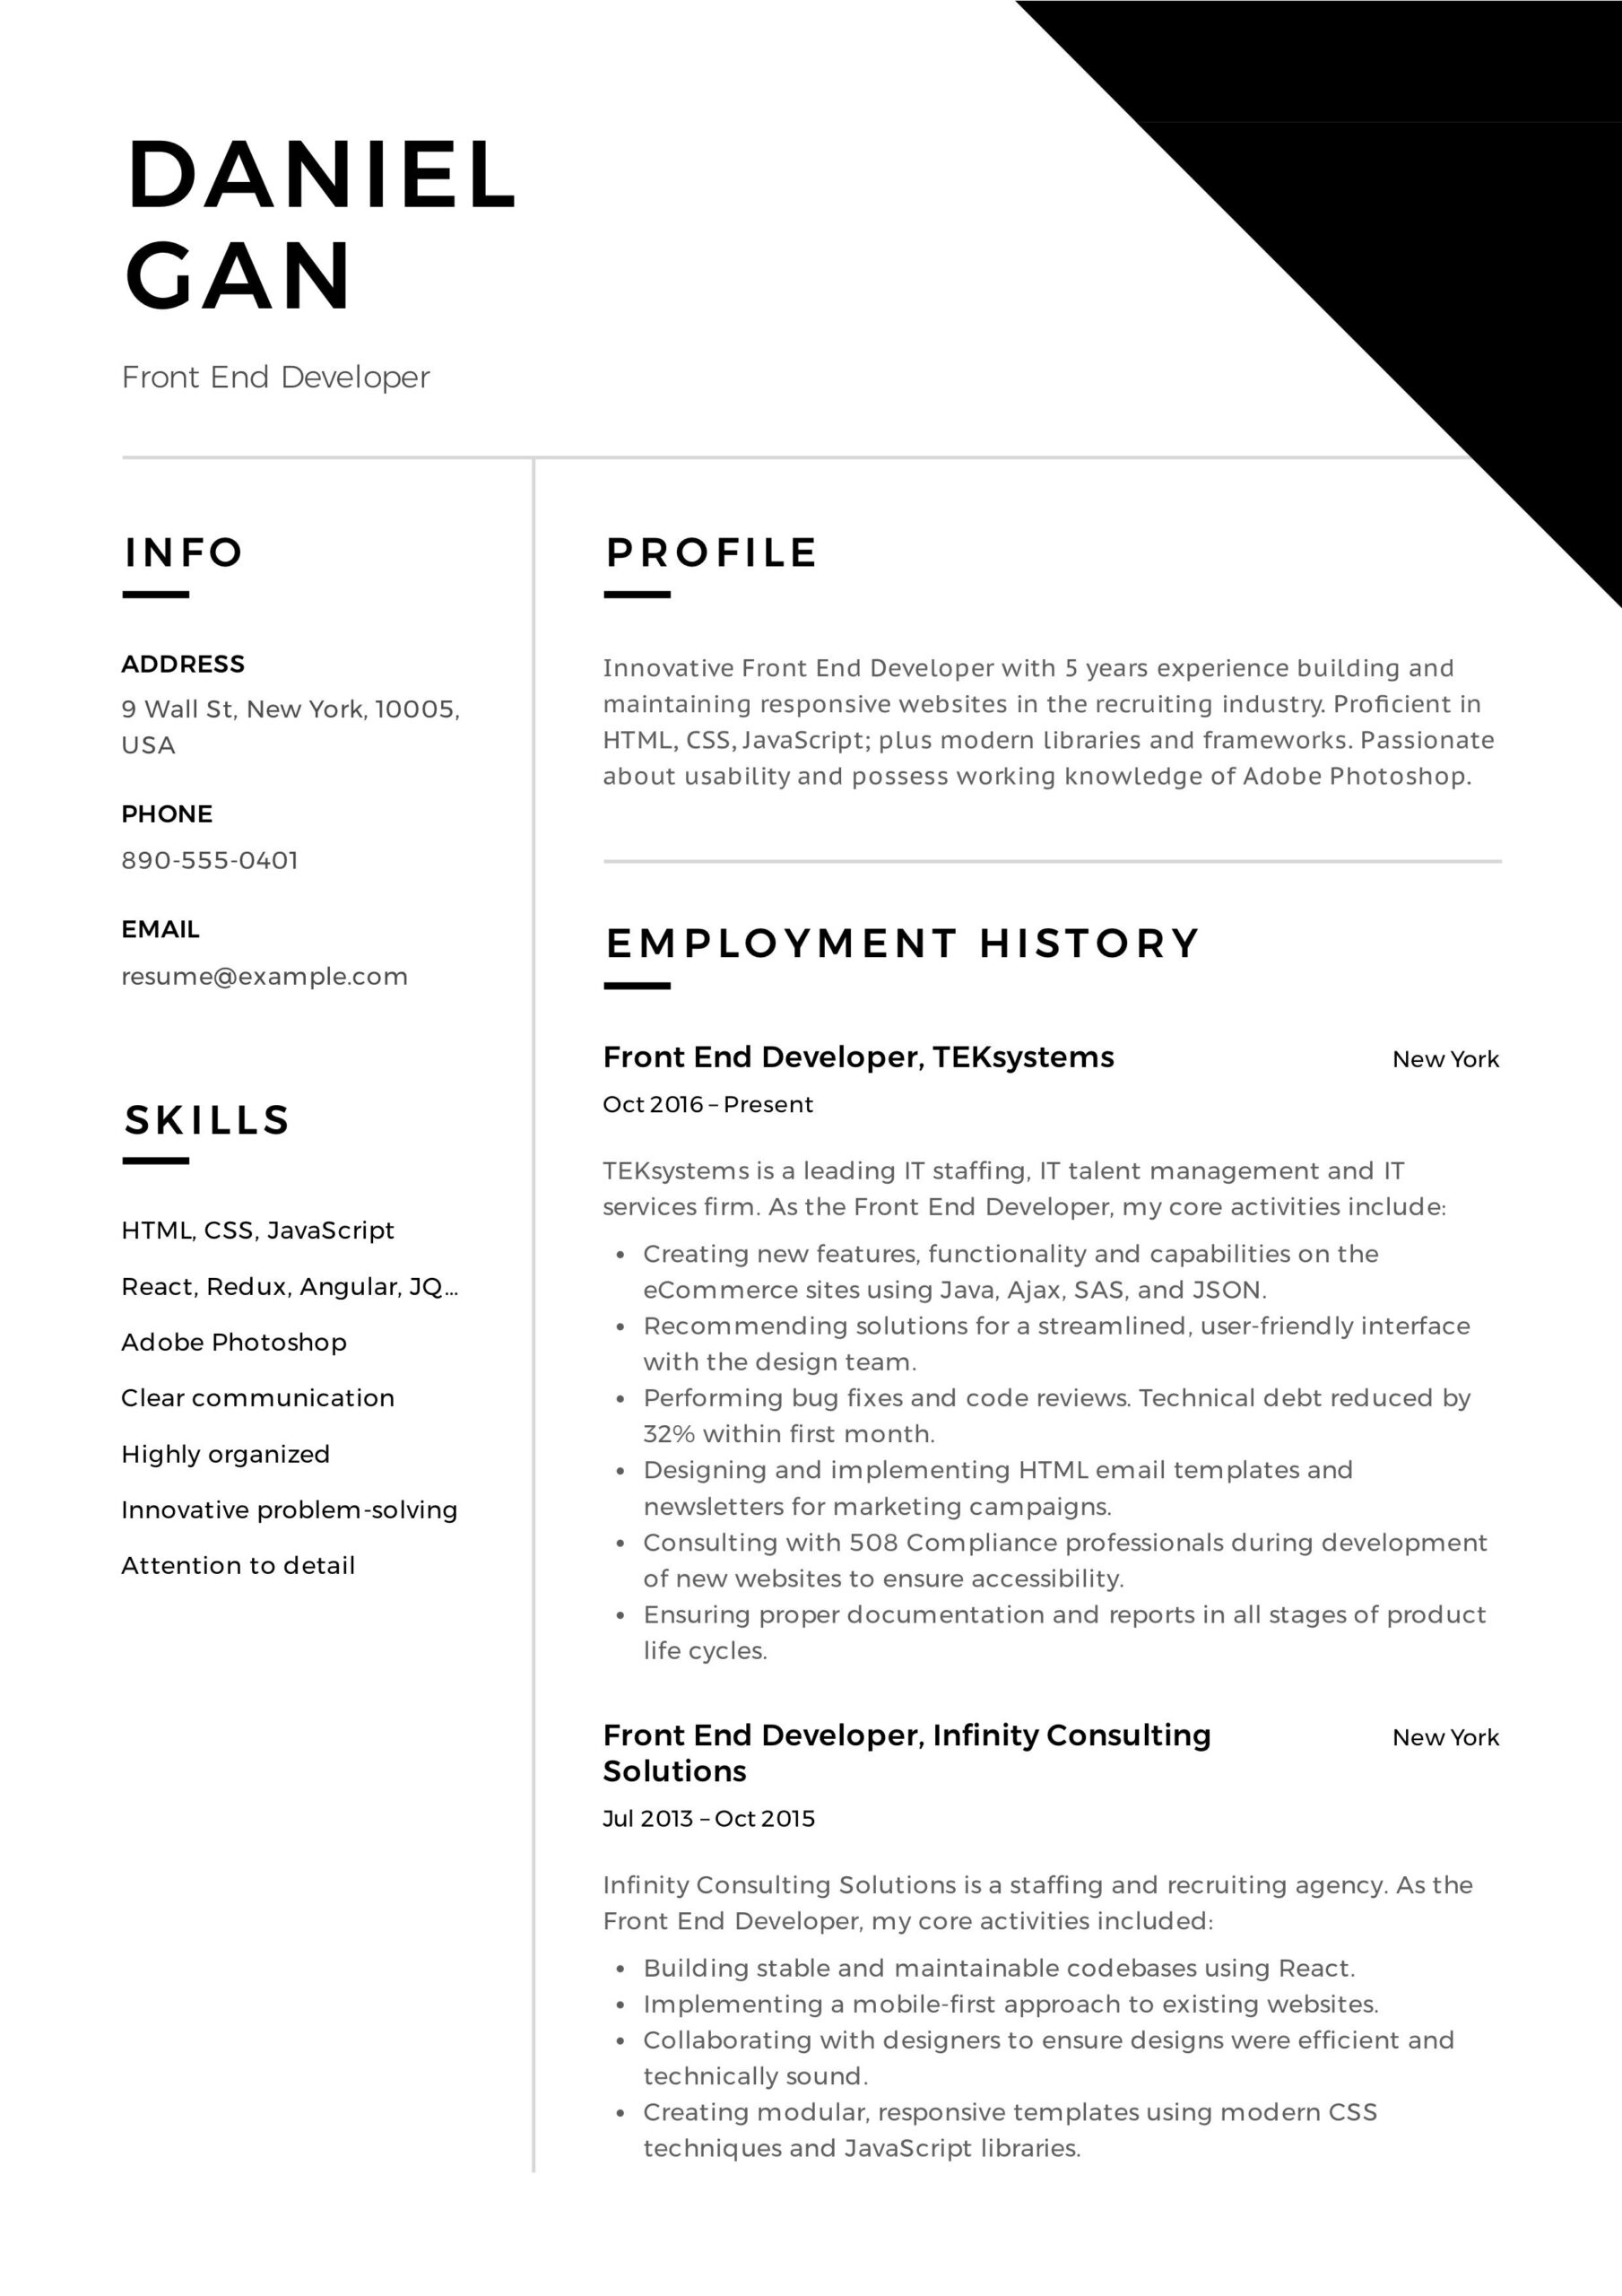 front end developer resume examples ideas updating entry level back retail objective Resume Entry Level Back End Developer Resume